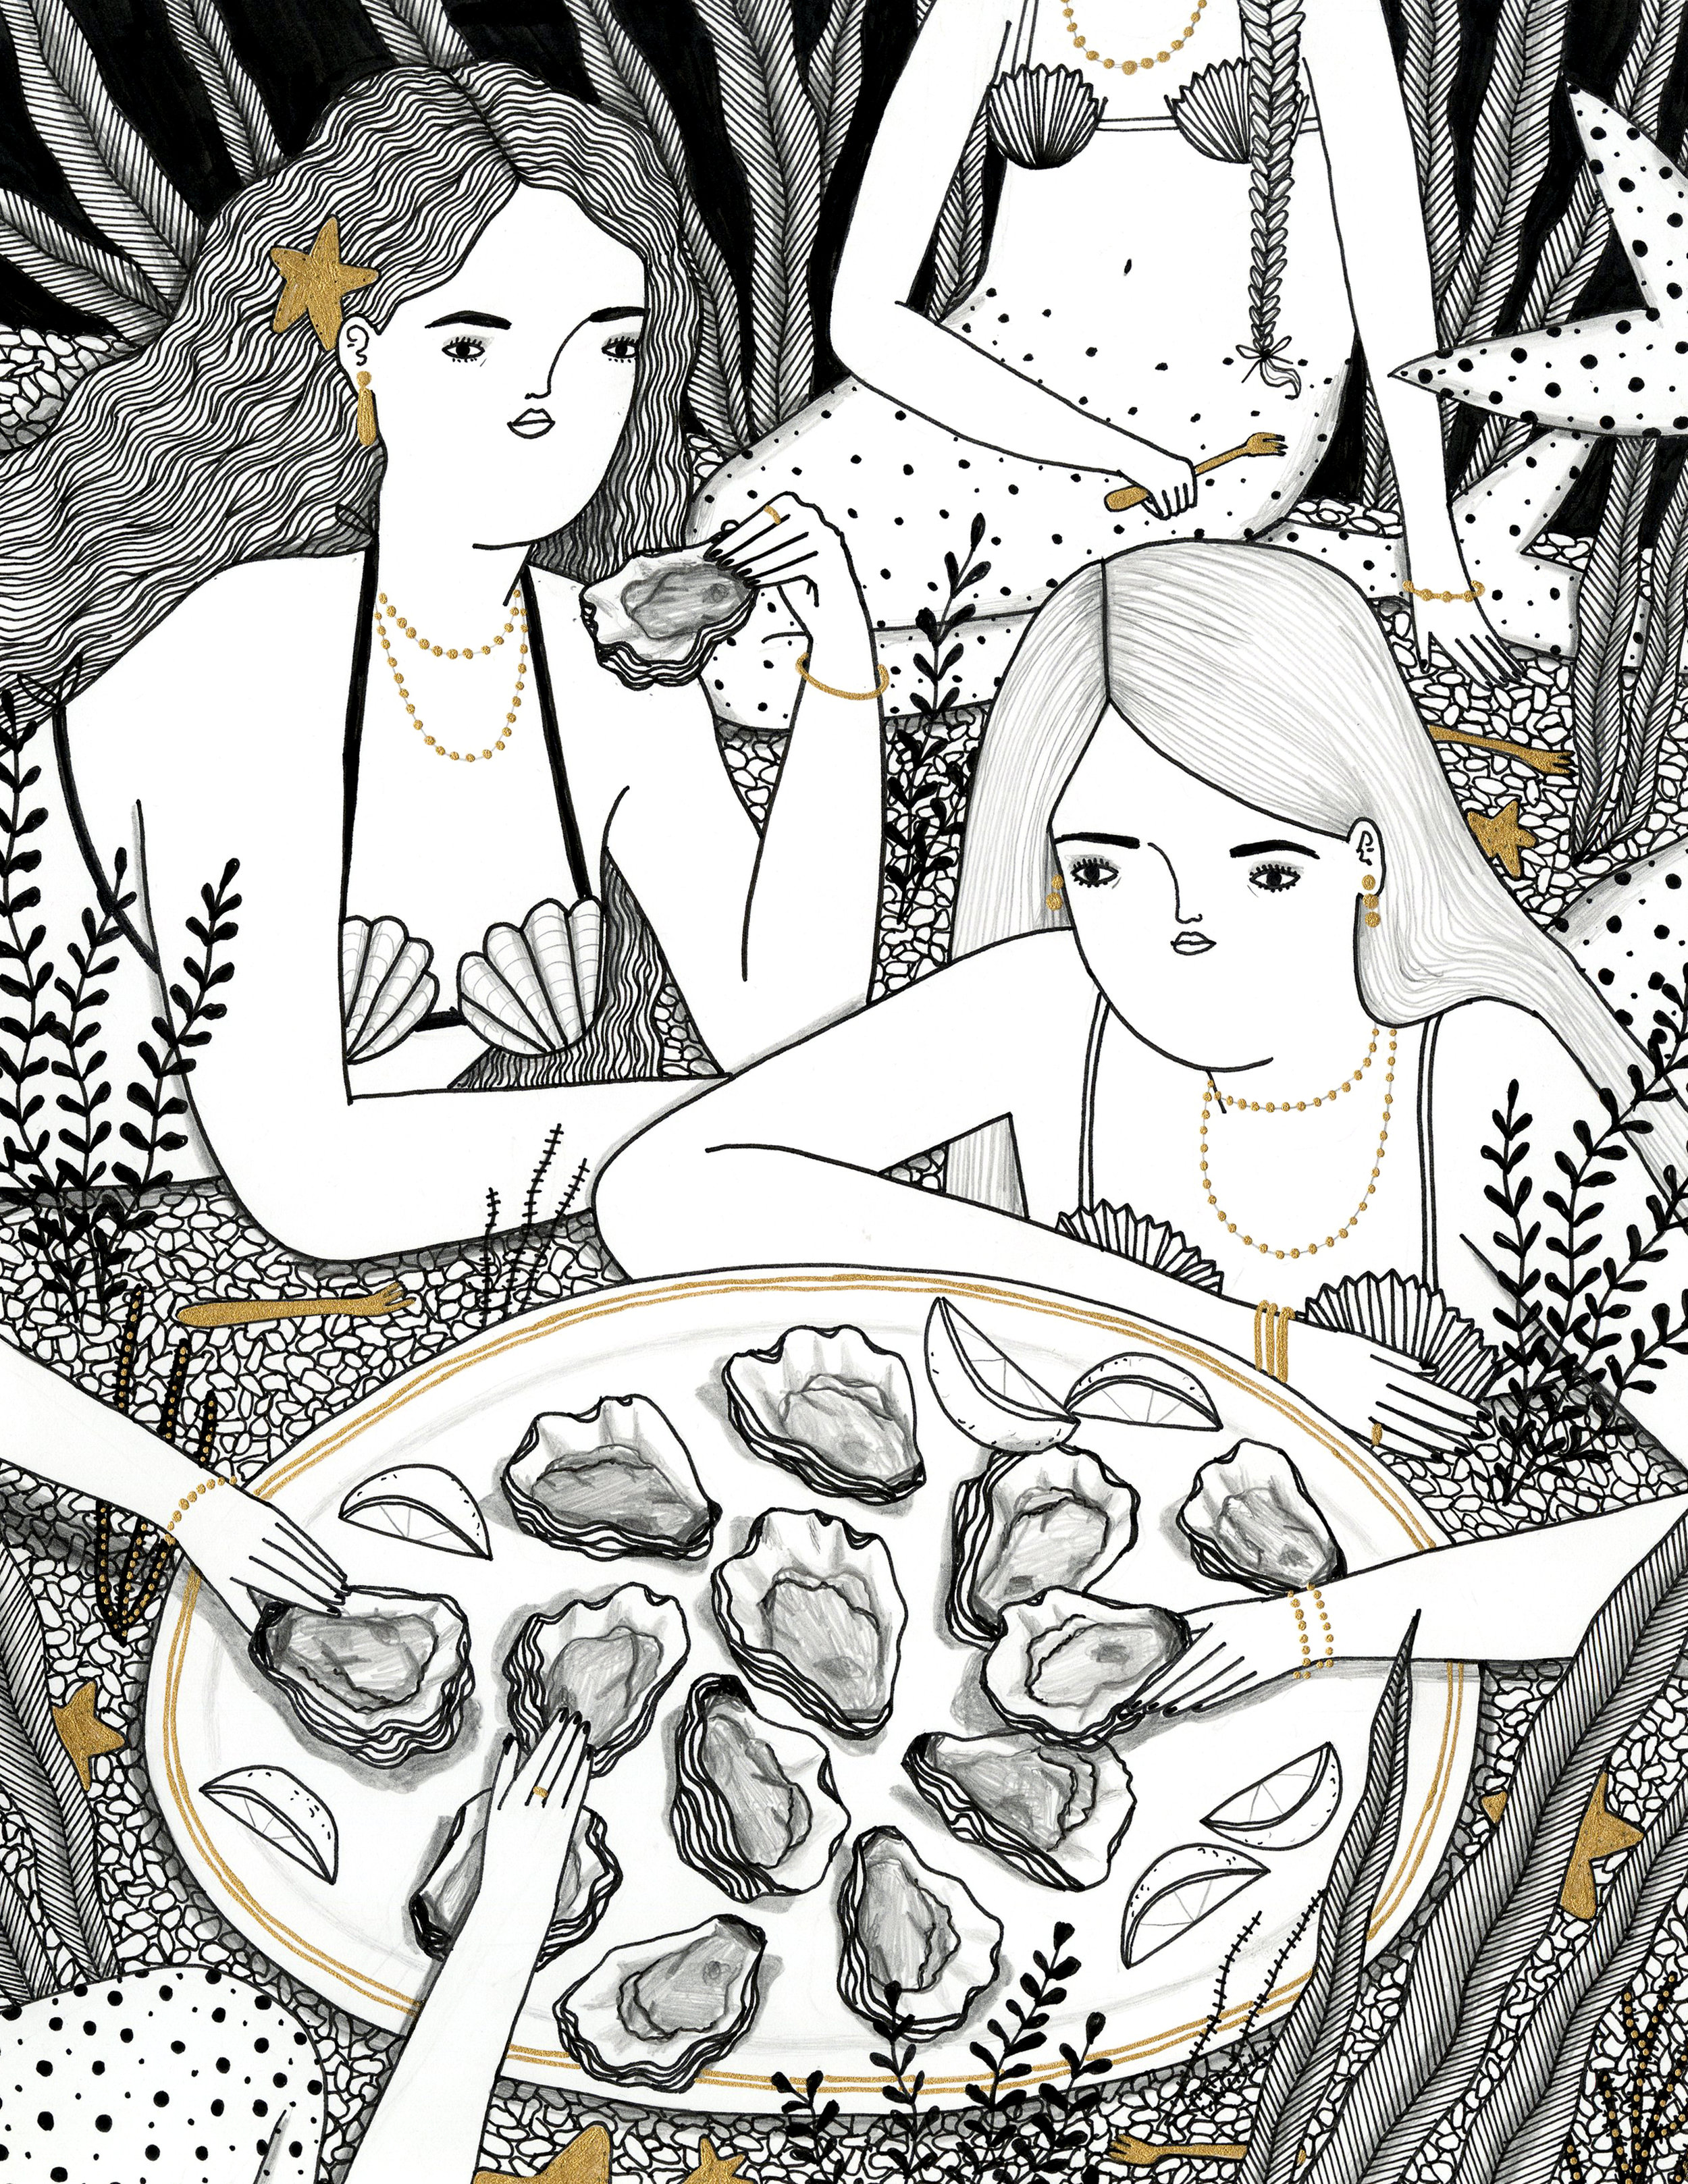 Oyster Mermaids